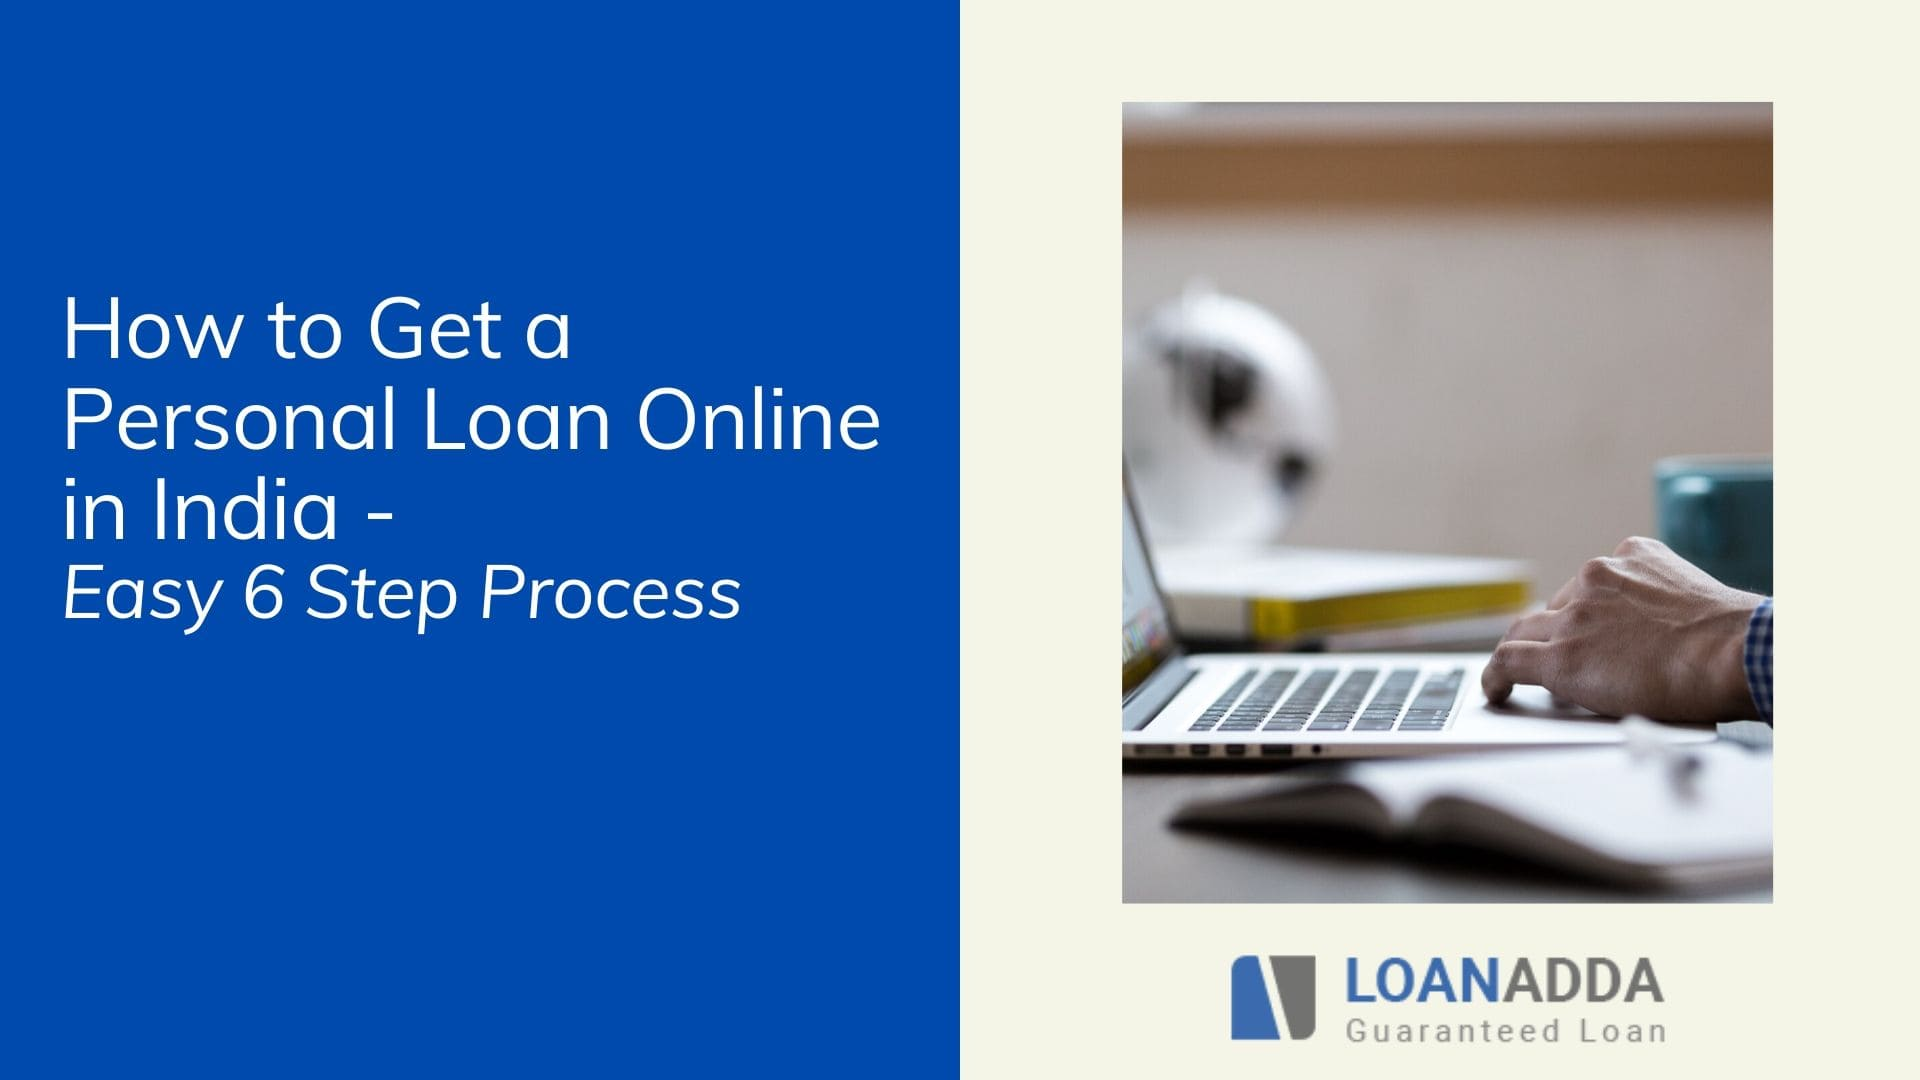 How to Get a Personal Loan Online in India - Instant Process to Get Loans Online